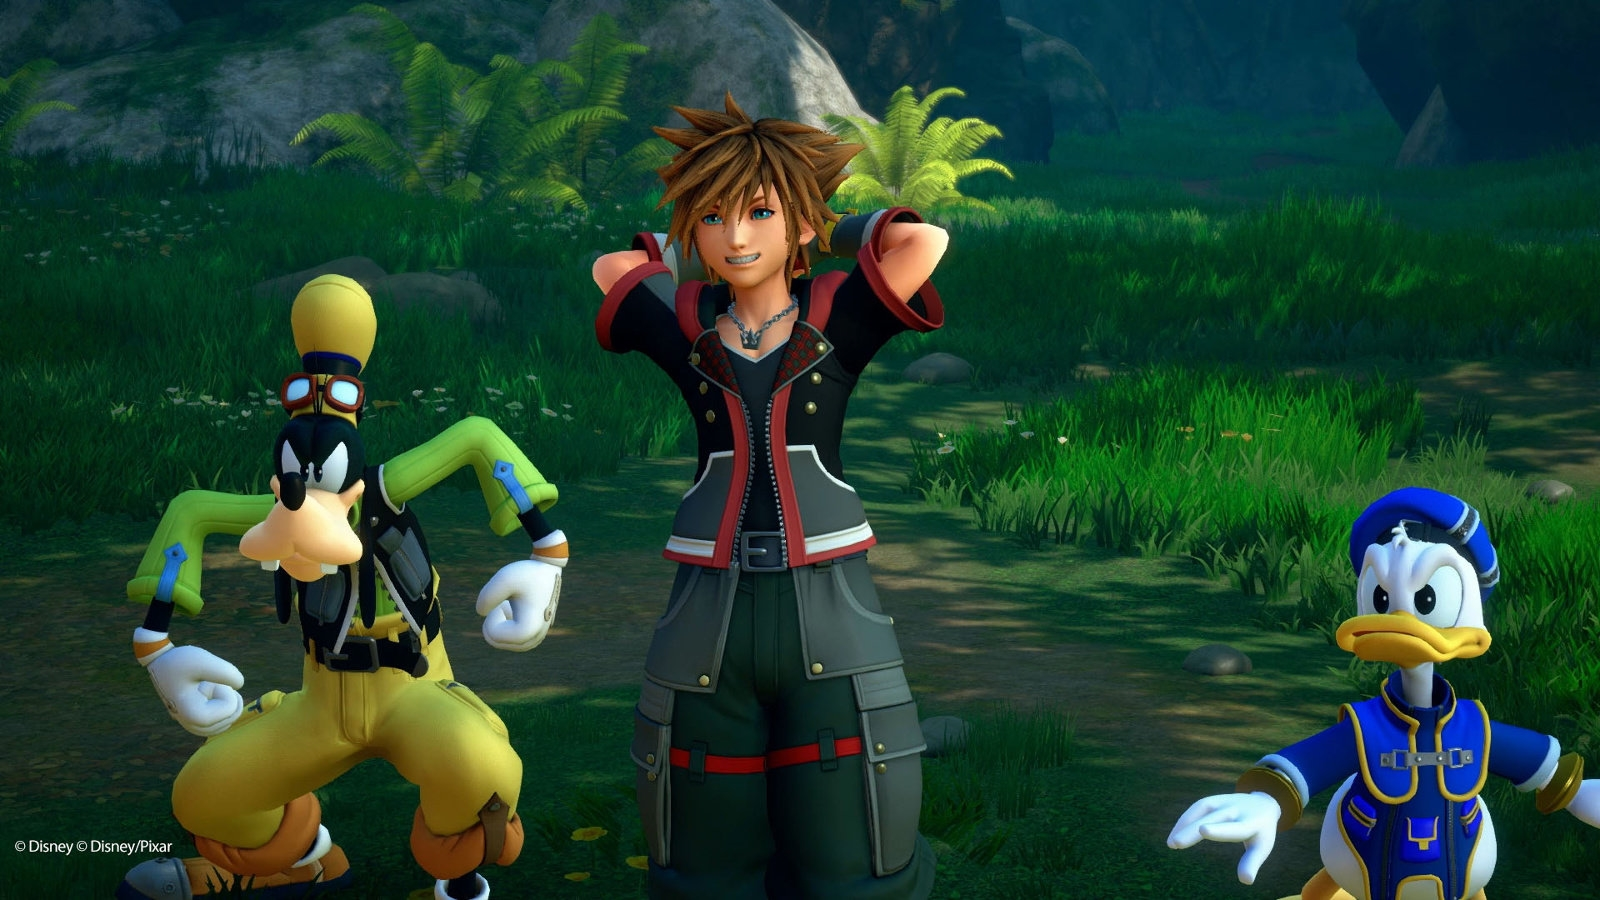 'Kingdom Hearts III' will land on PS4 and Xbox One in 2019 | DeviceDaily.com